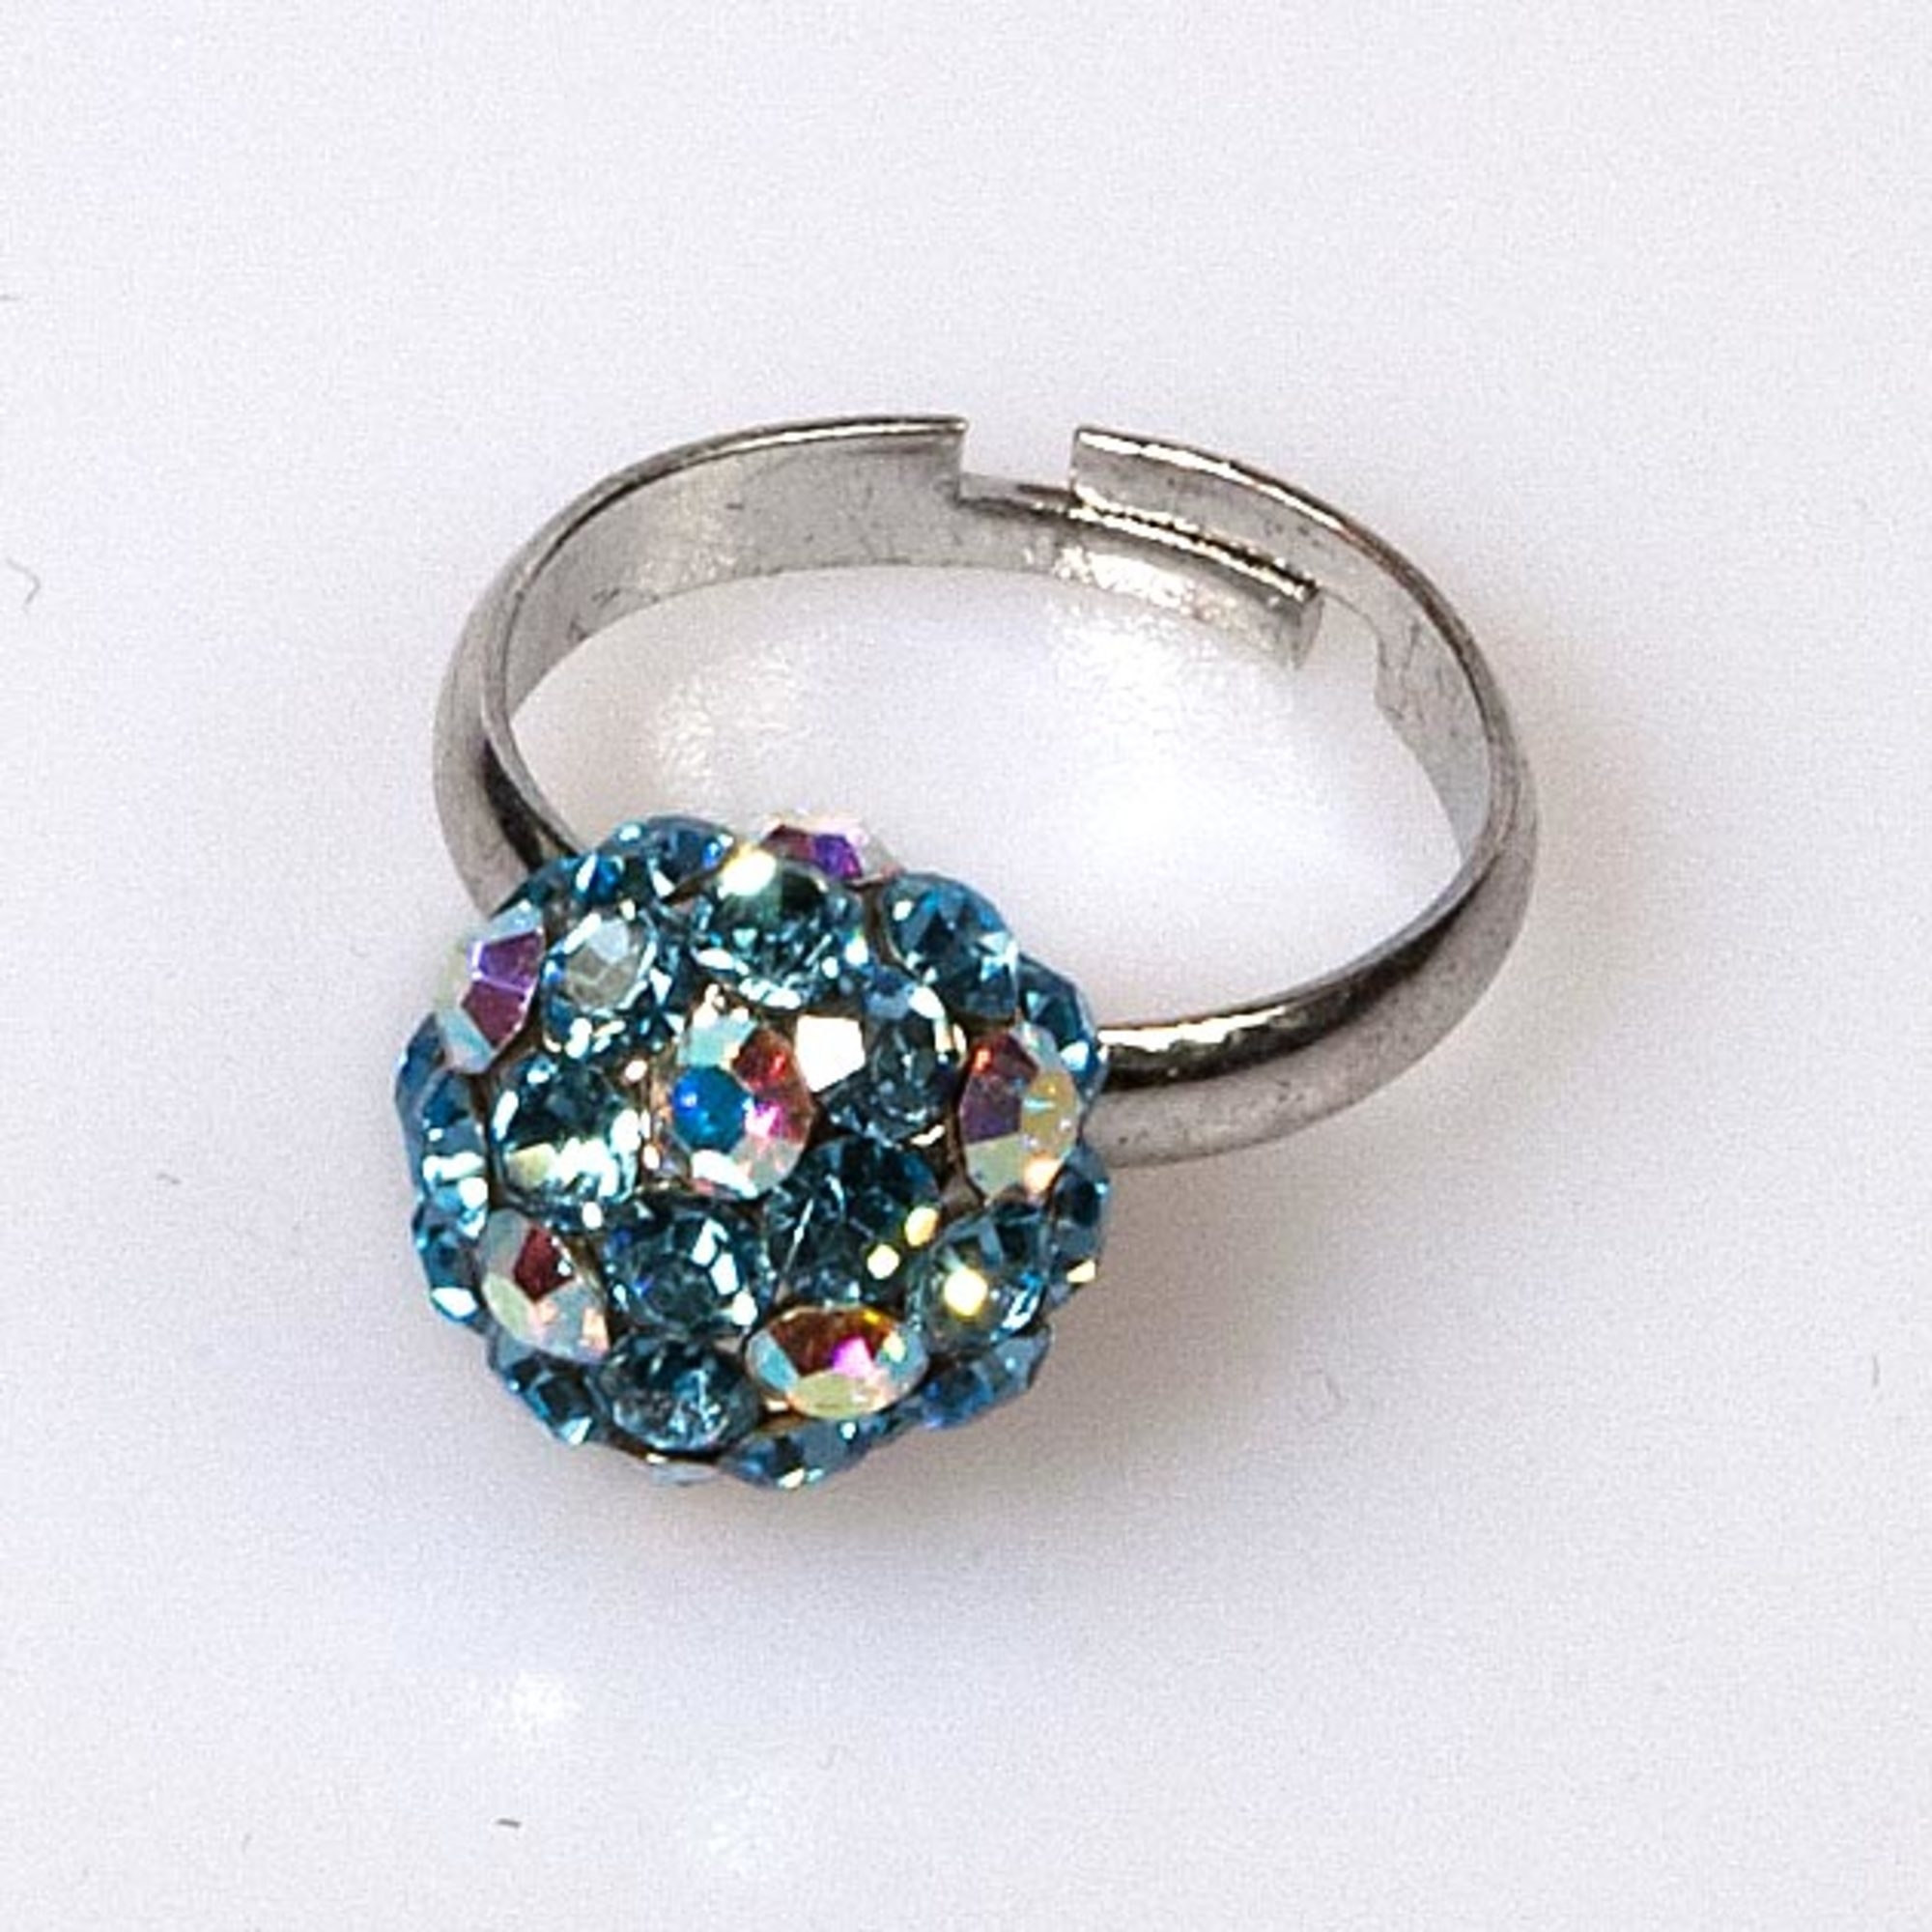 AQUA MARINE MINI BALL RING